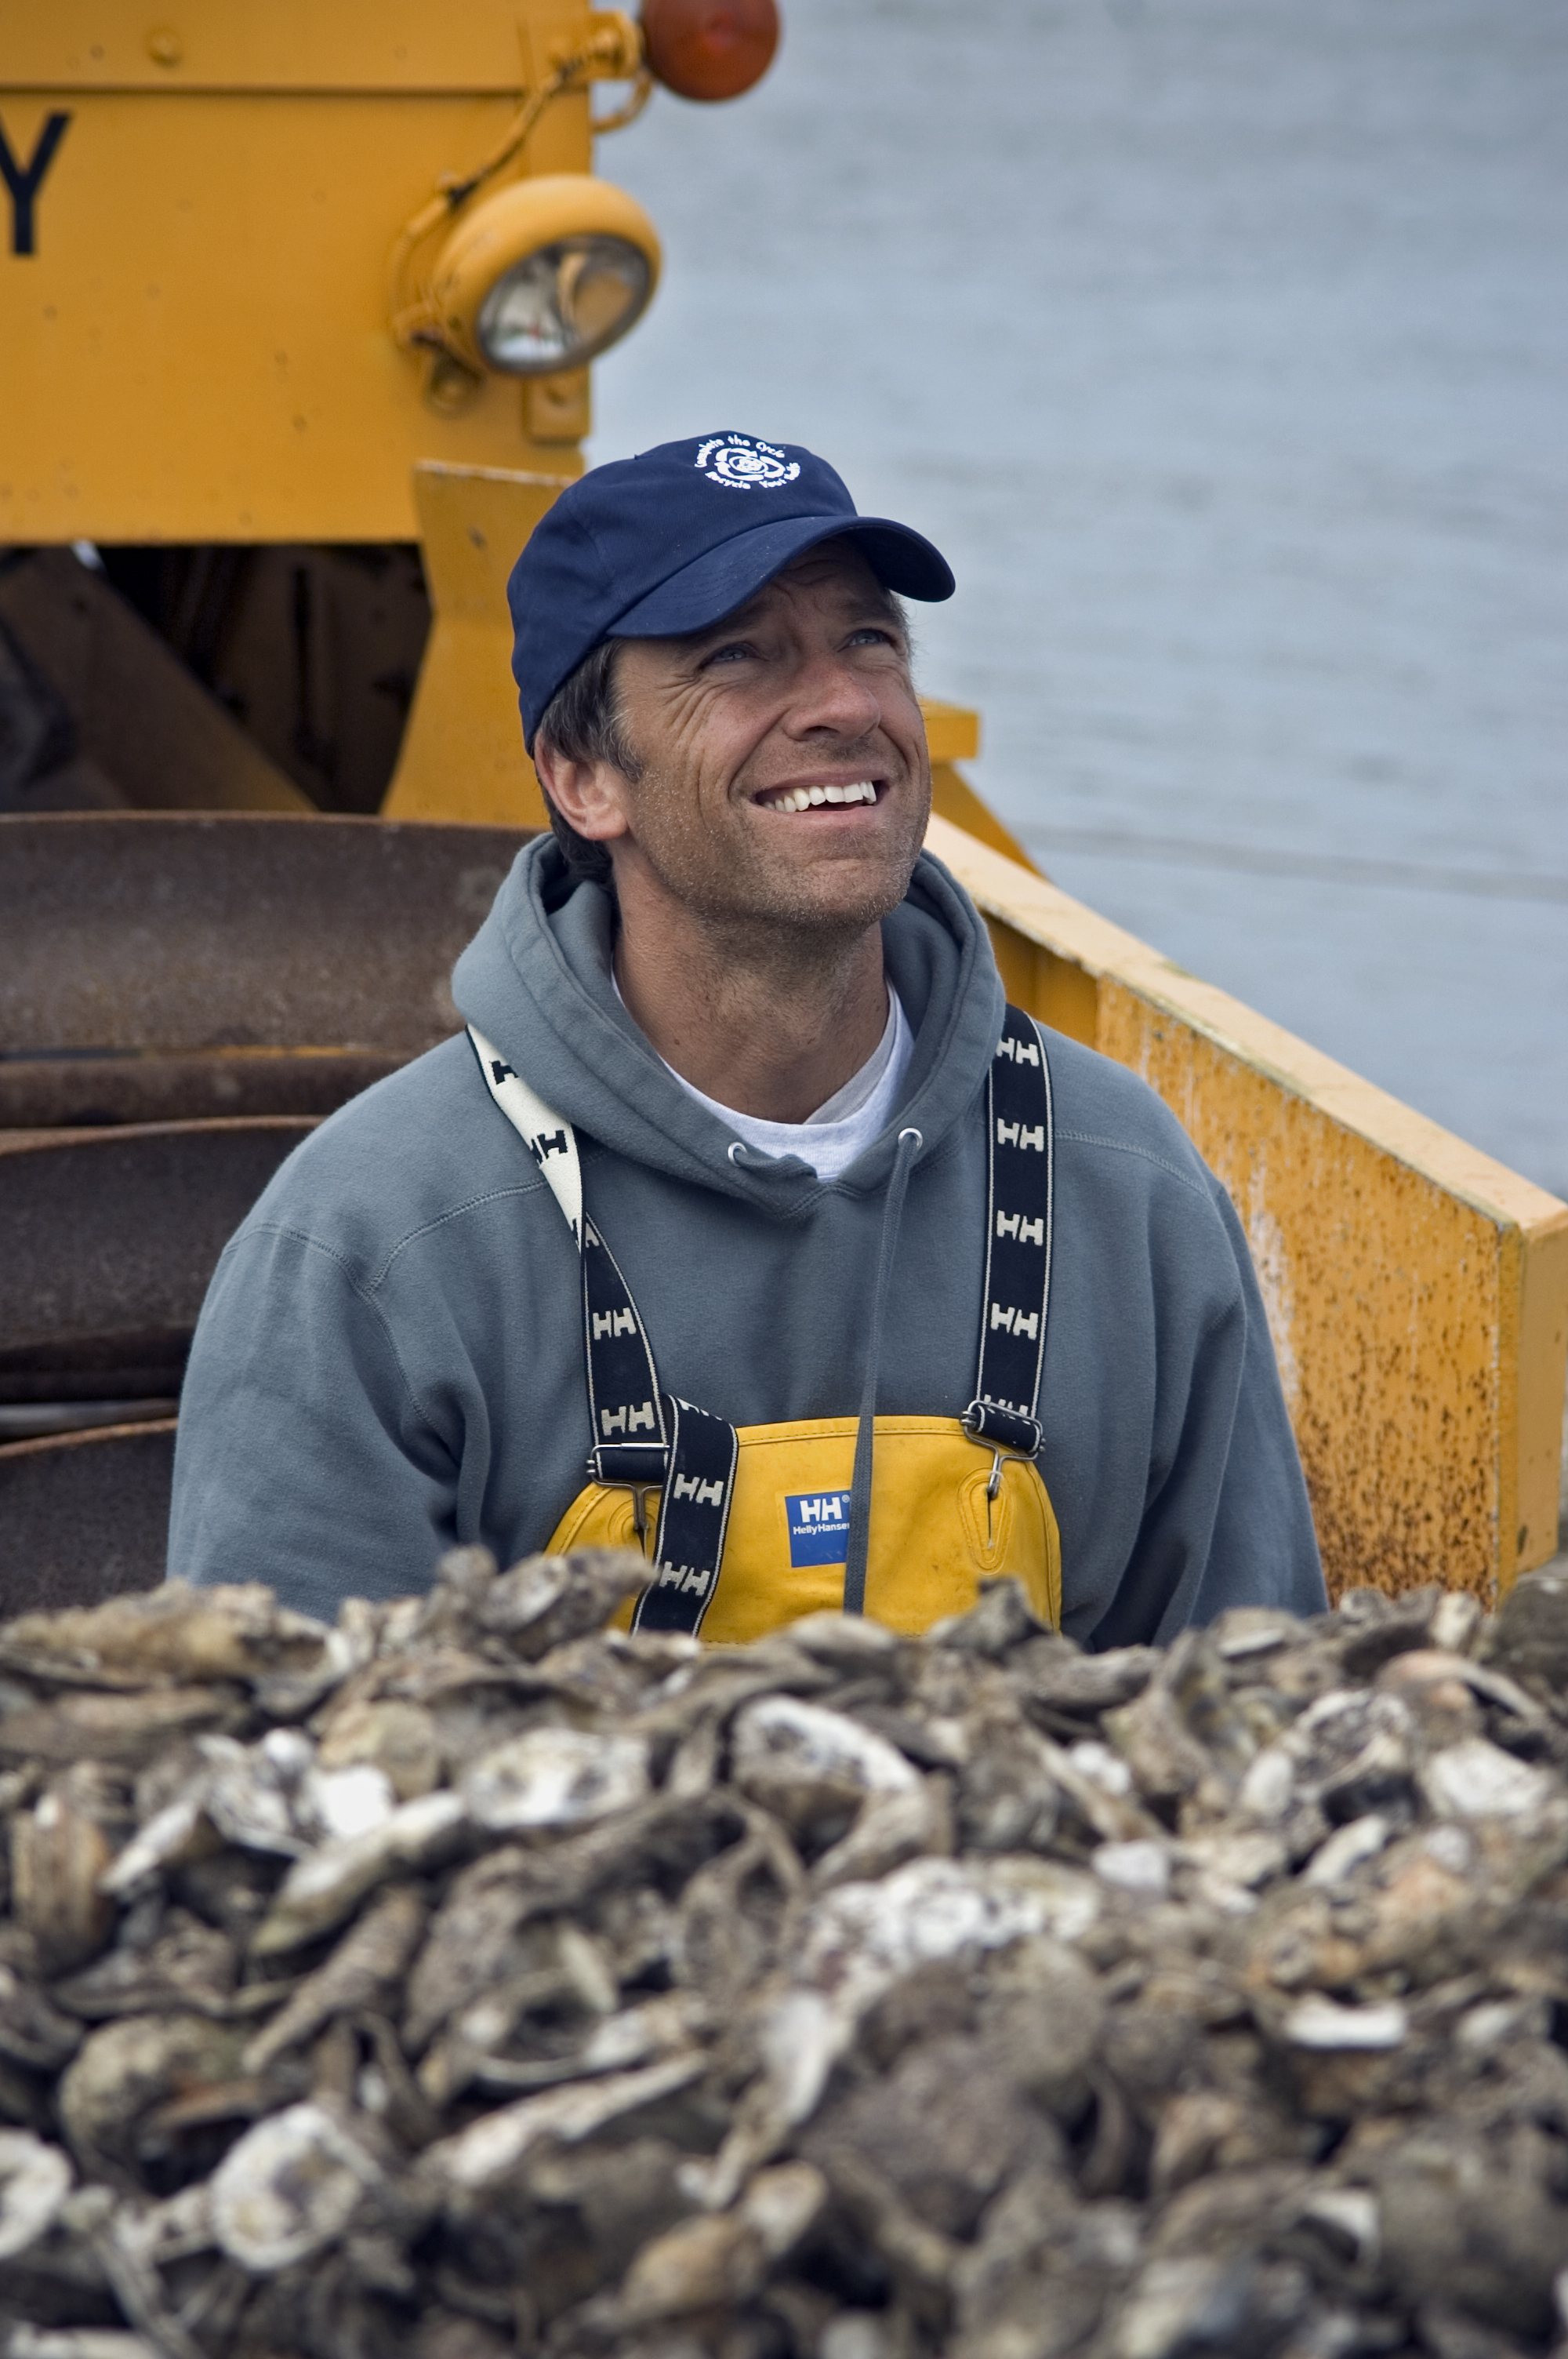 Mike rowe resume